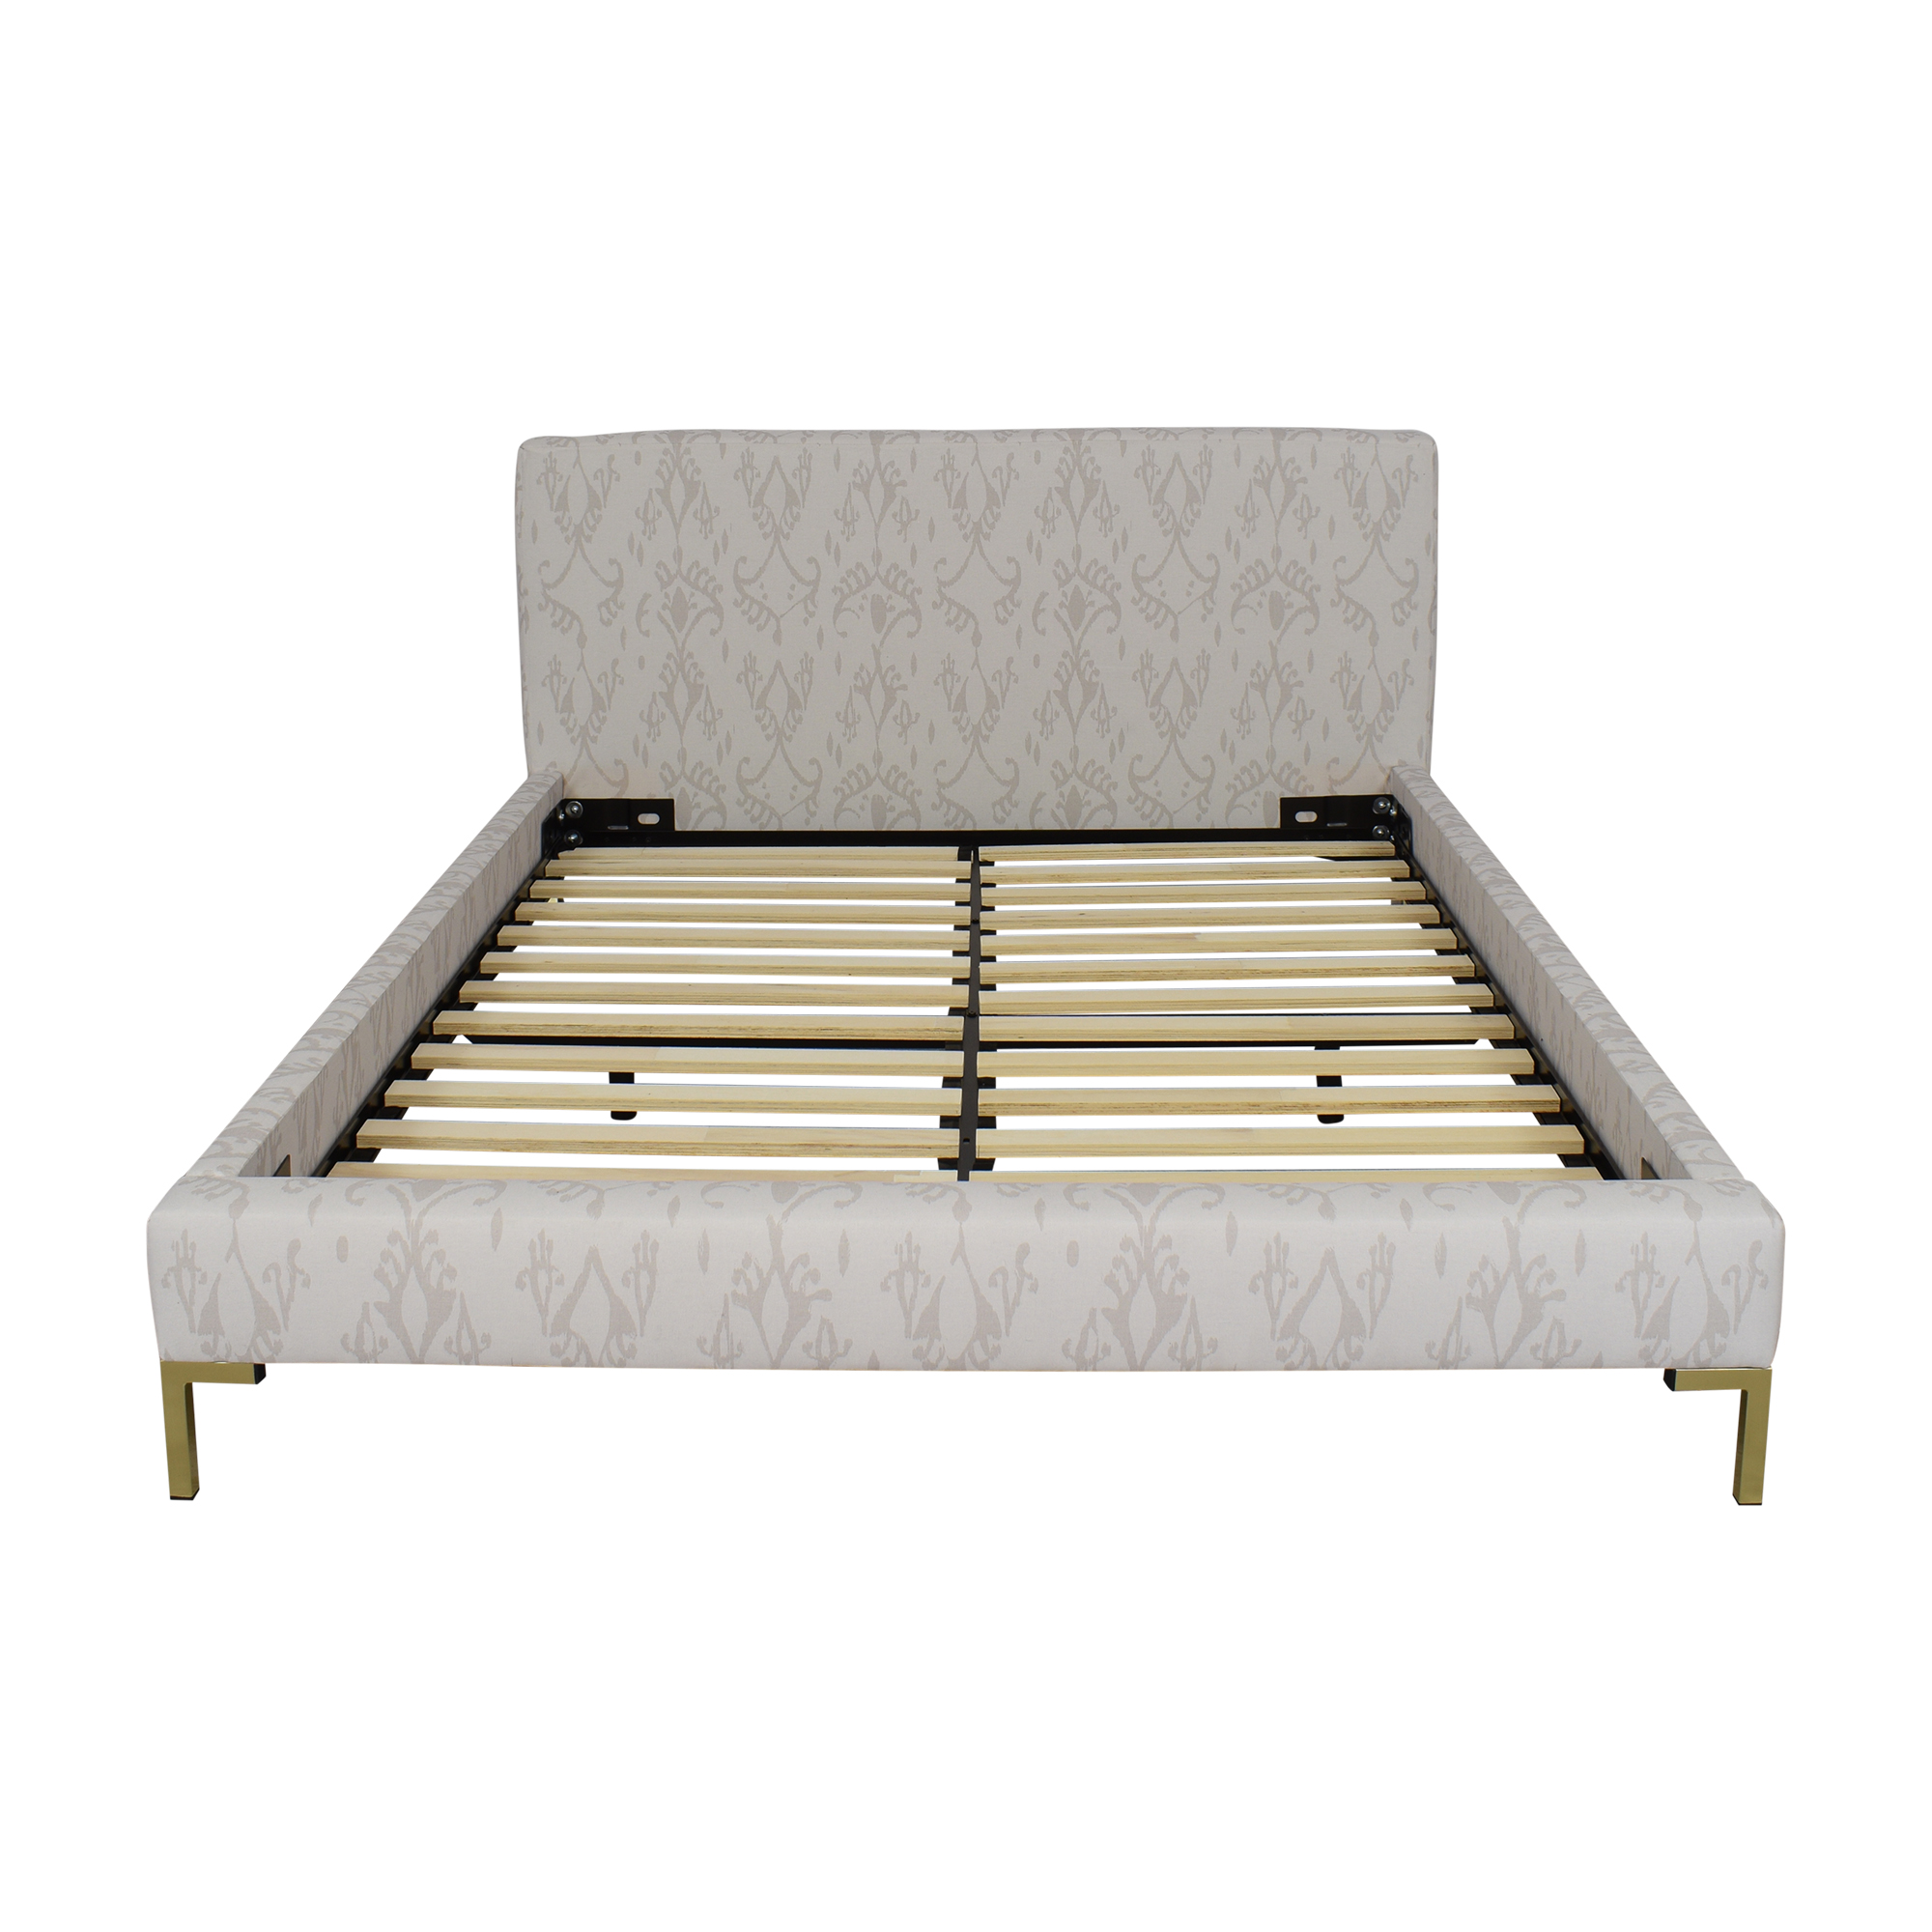 The Inside Modern Queen Platform Bed / Bed Frames